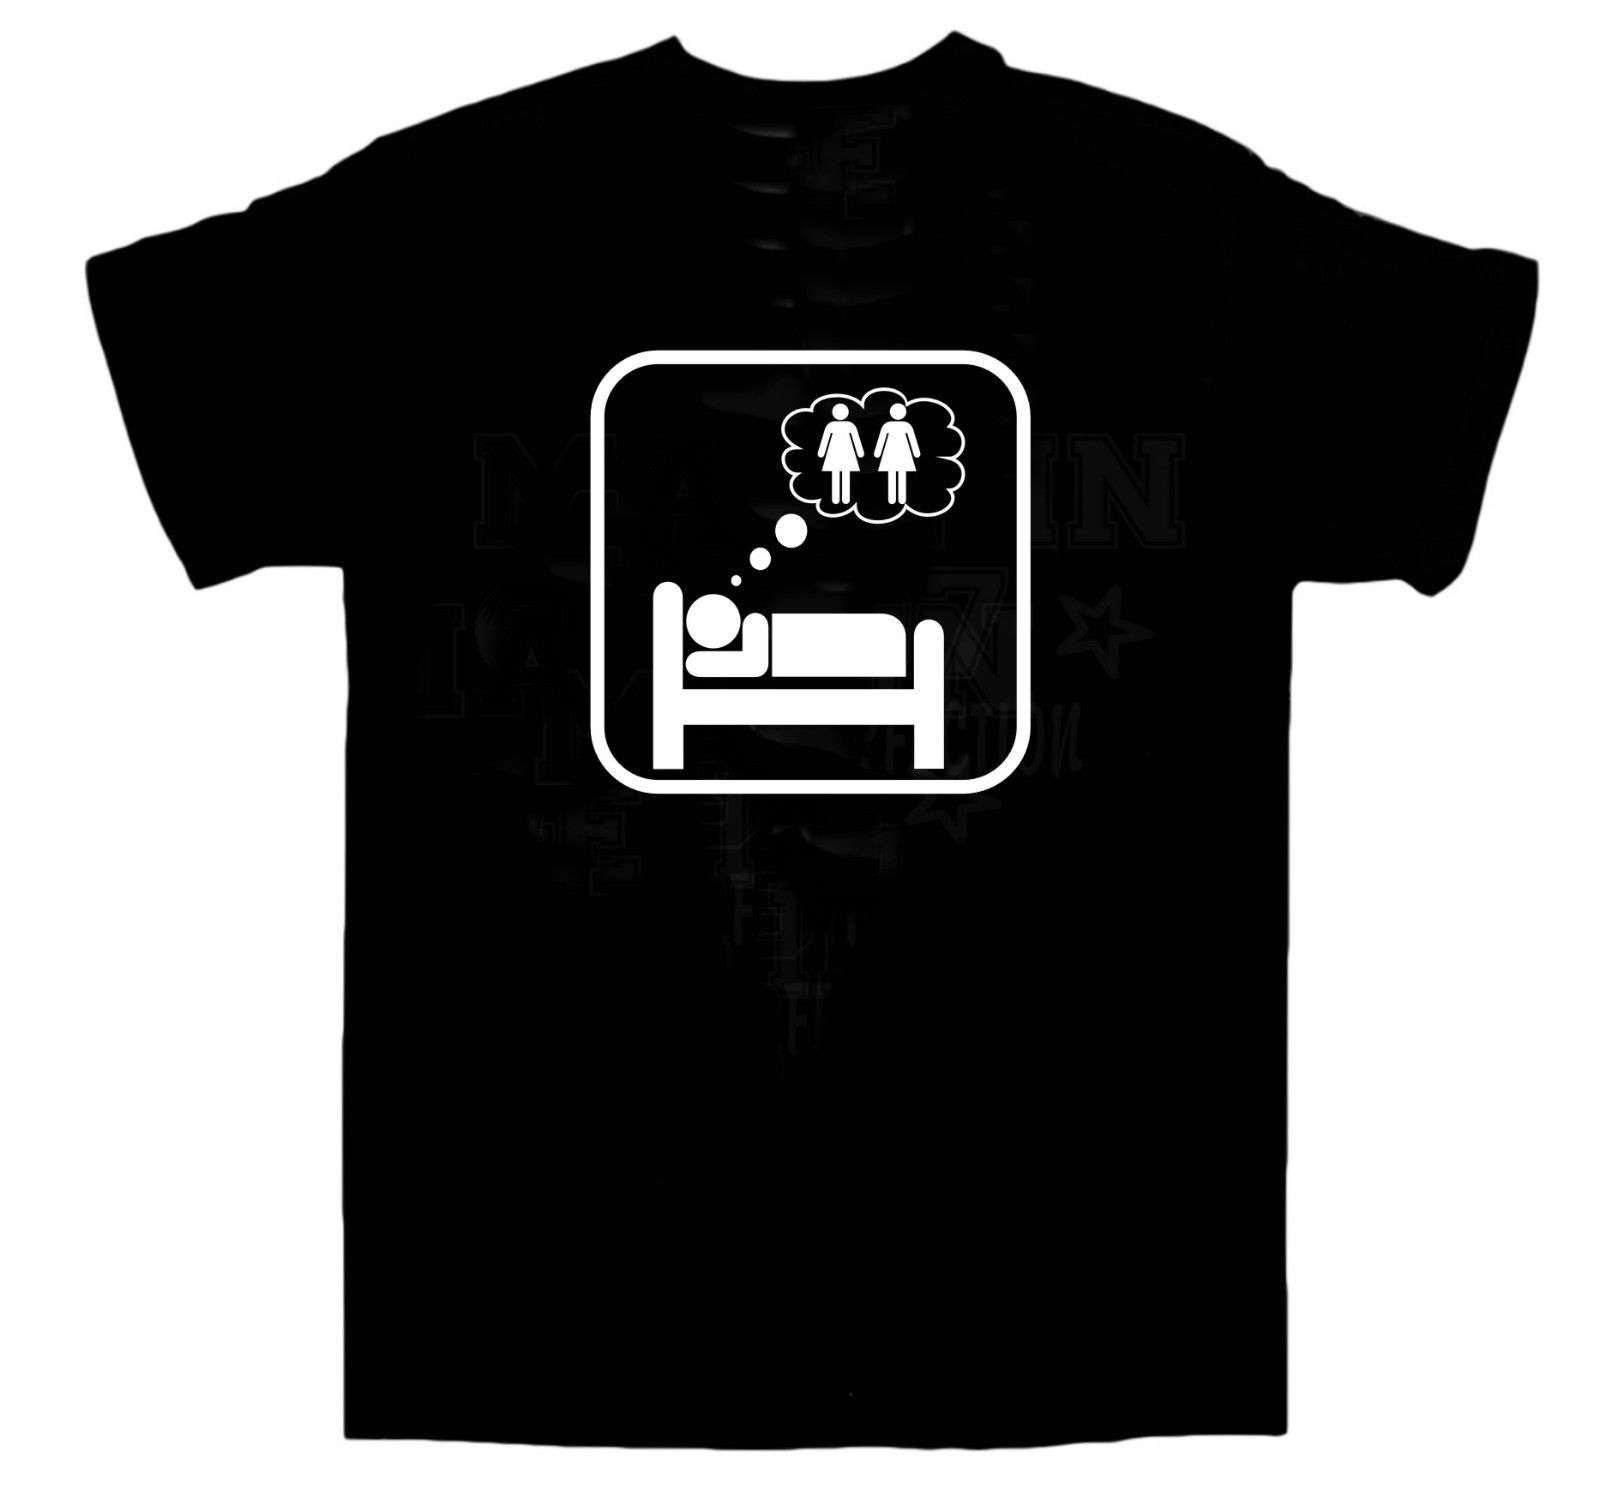 Dreaming Of 2 Girls T-shirt / Sex / Threesome / Orgy / Wedding / BBQ / All Sizes image